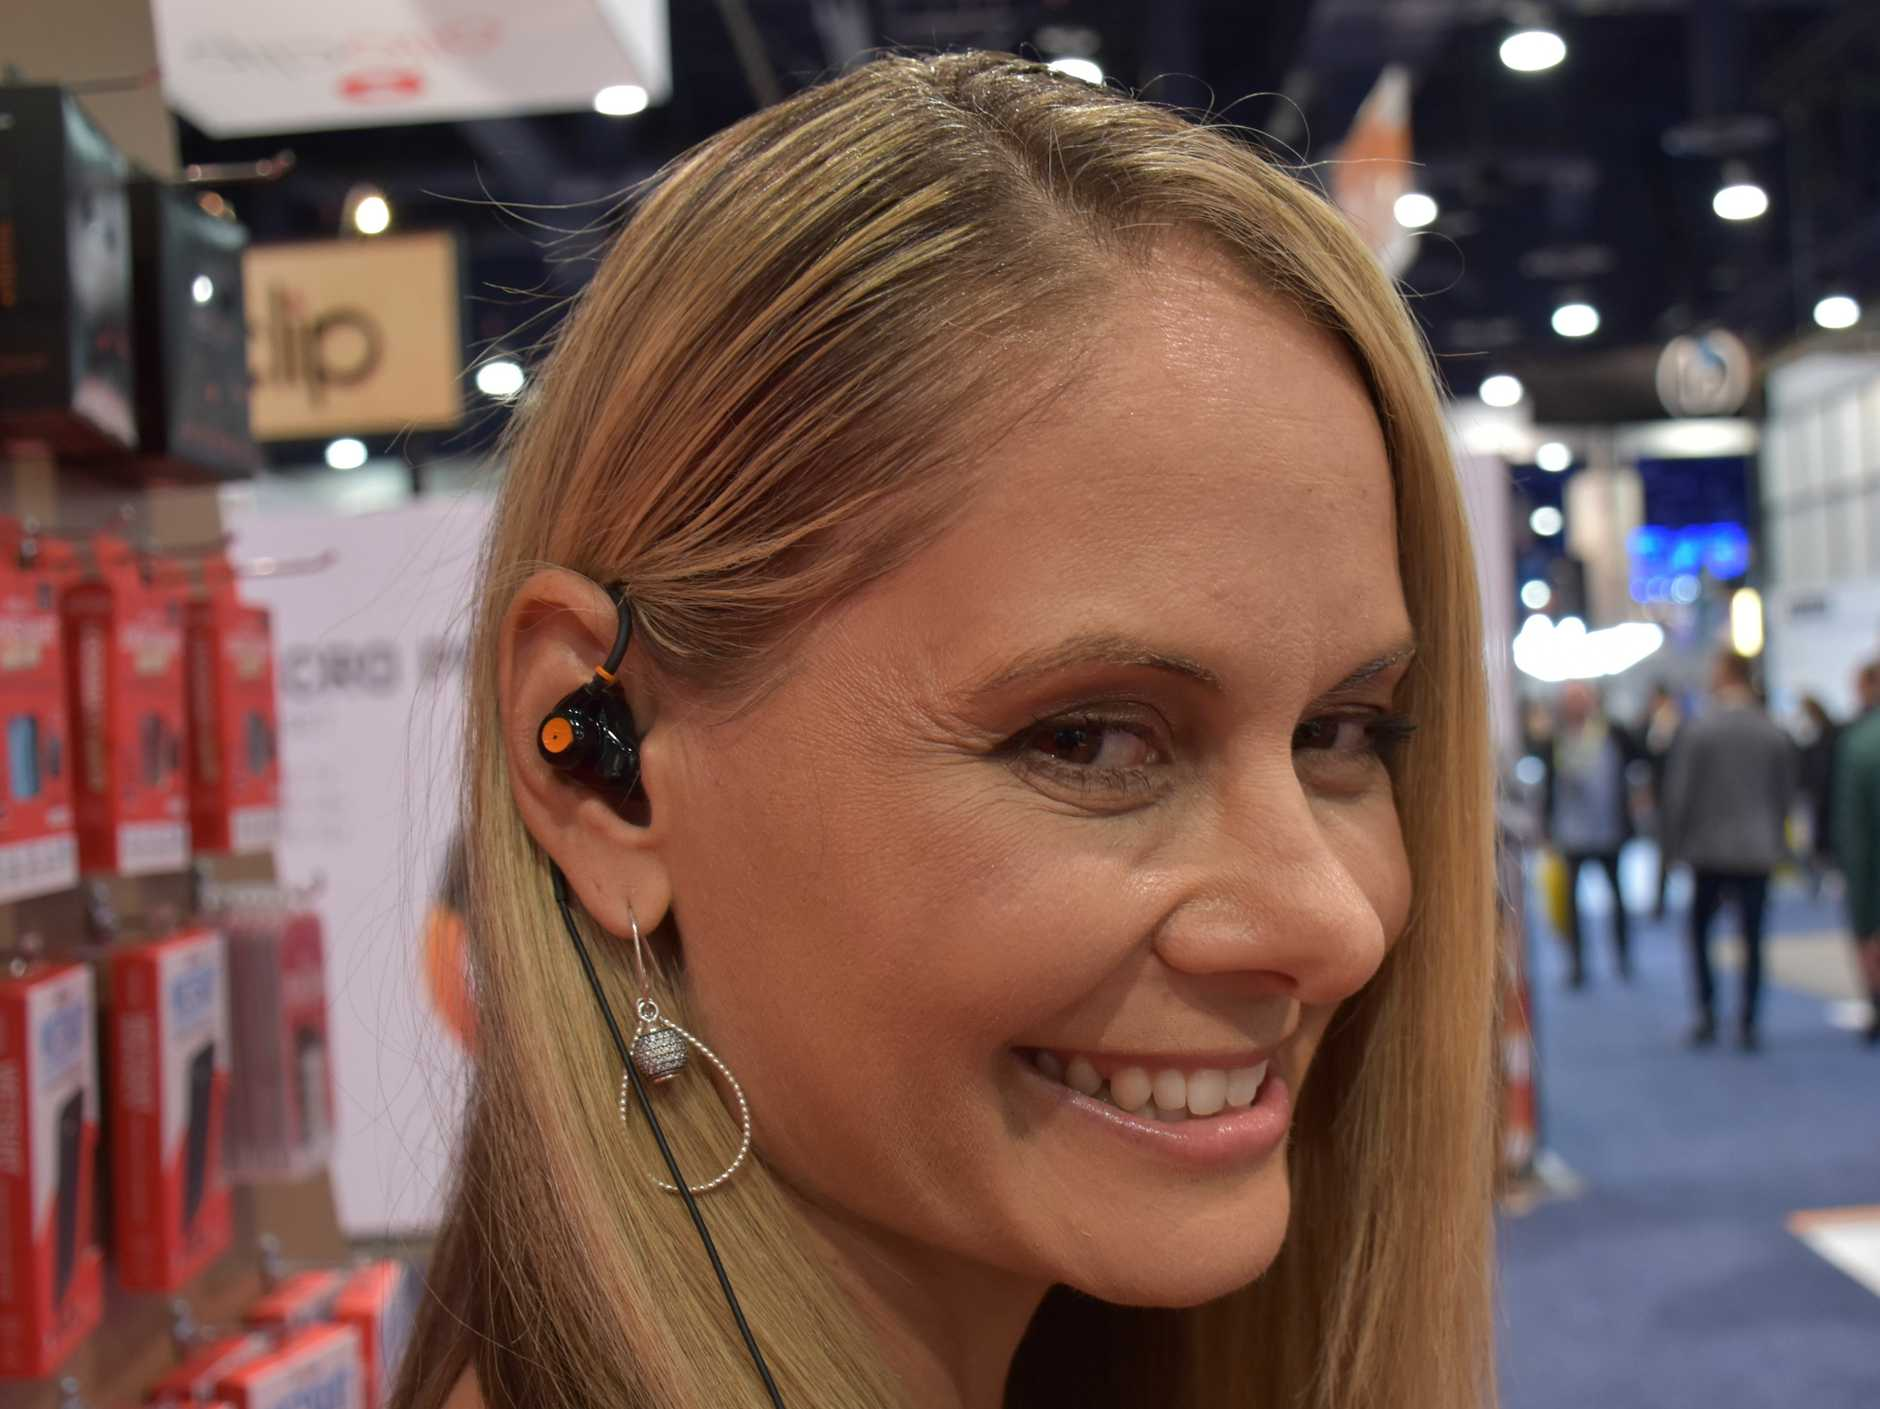 Maria Ranchod, of Dog and Bone, models Earmade at CES 2017 in Las Vegas plus insert of product.